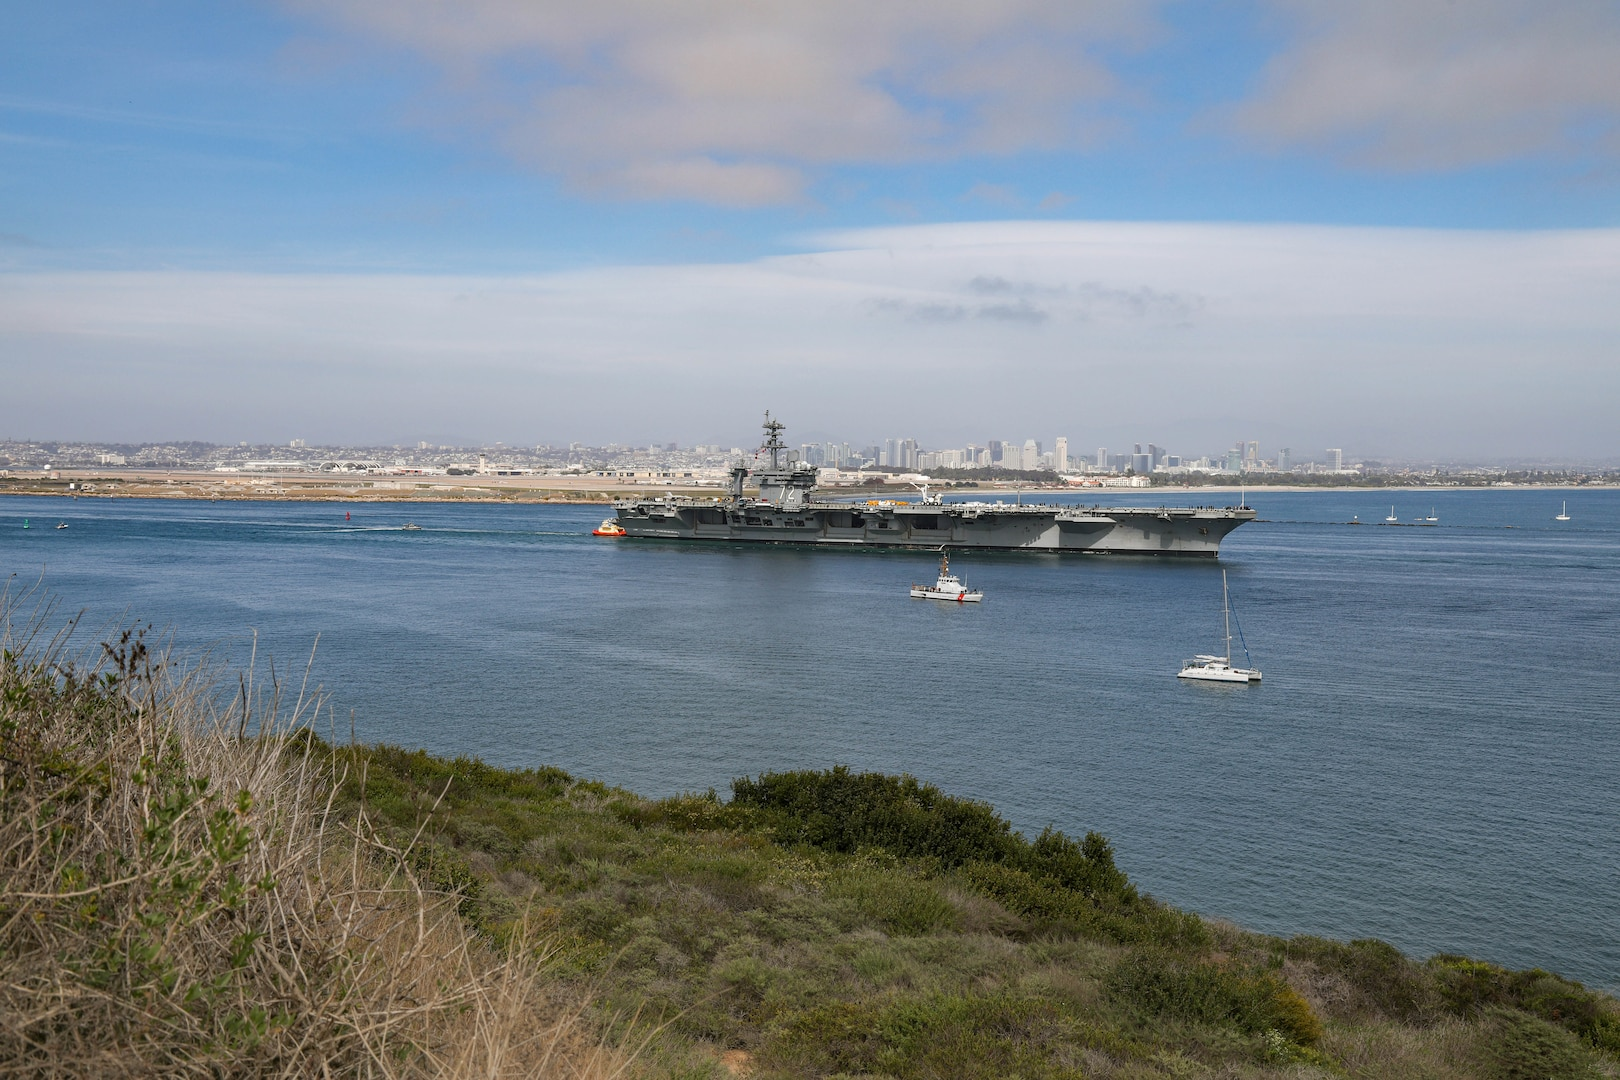 USS Abraham Lincoln (CVN 72) departs San Diego April 5, 2021, headed out to sea trials after undergoing a seven-month Planned Incremental Availability at Puget Sound Naval Shipyard & Intermediate Maintenance Facility's San Diego Detachment. Lincoln successfully completed sea trials April 7, 2021. (PSNS & IMF photo by Robin Lee)